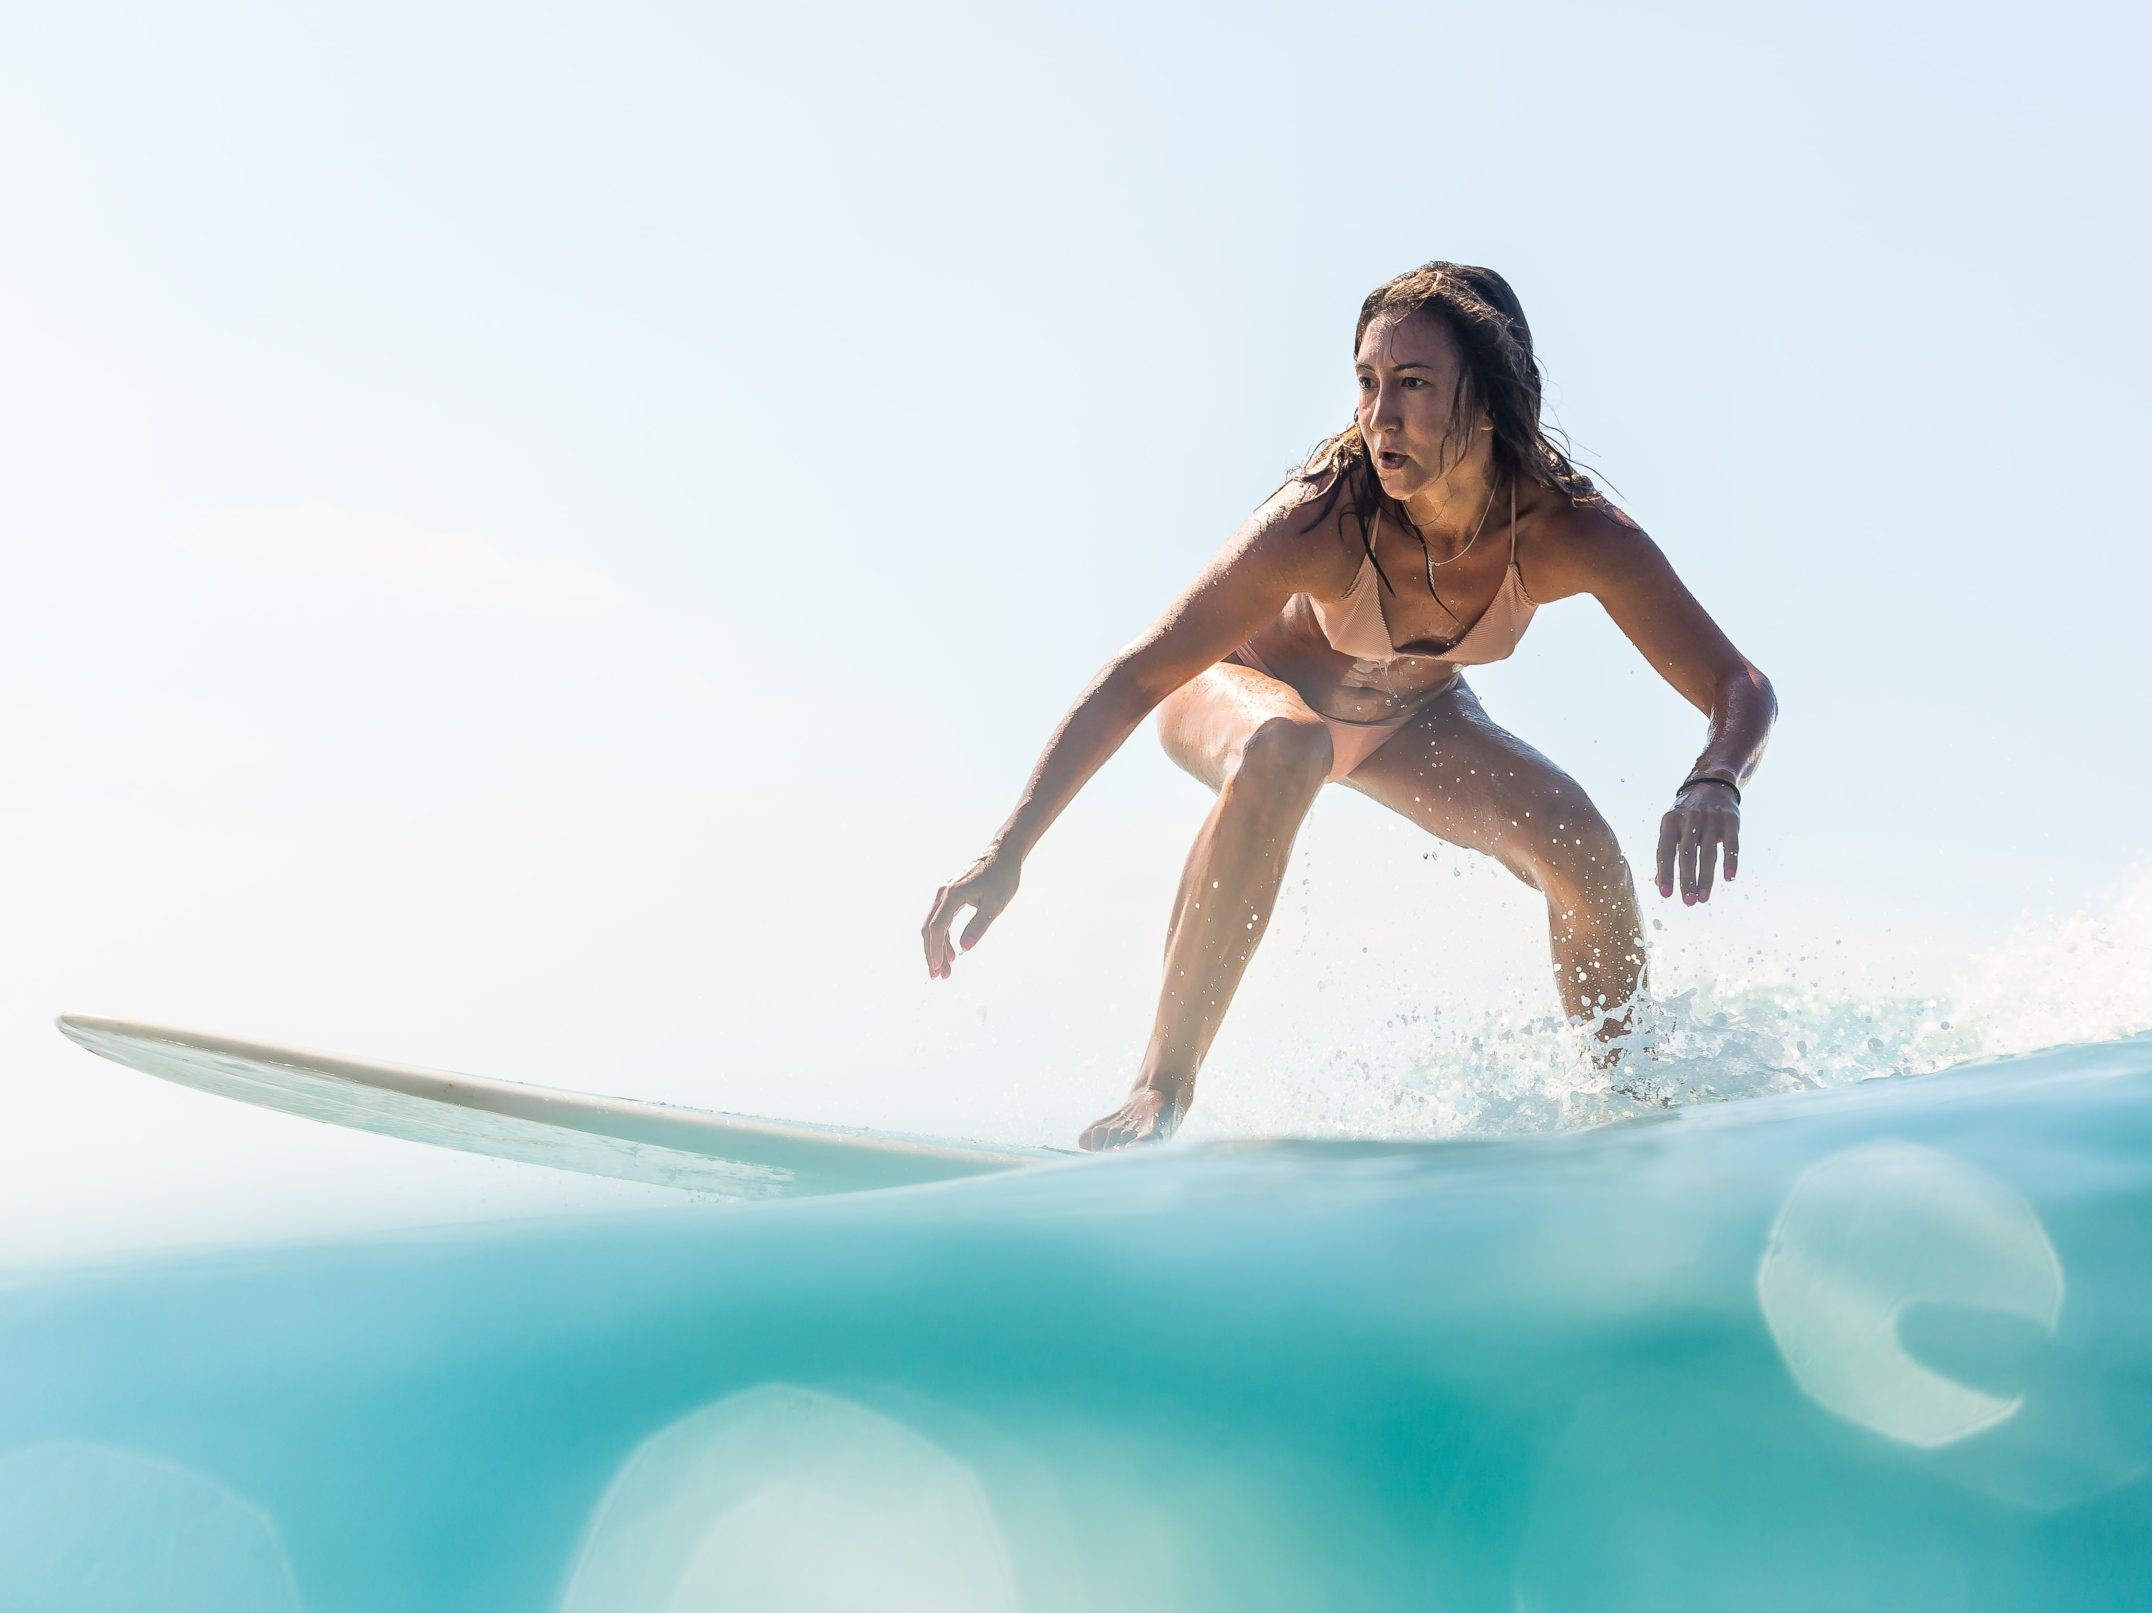 how to turn on a surfboard